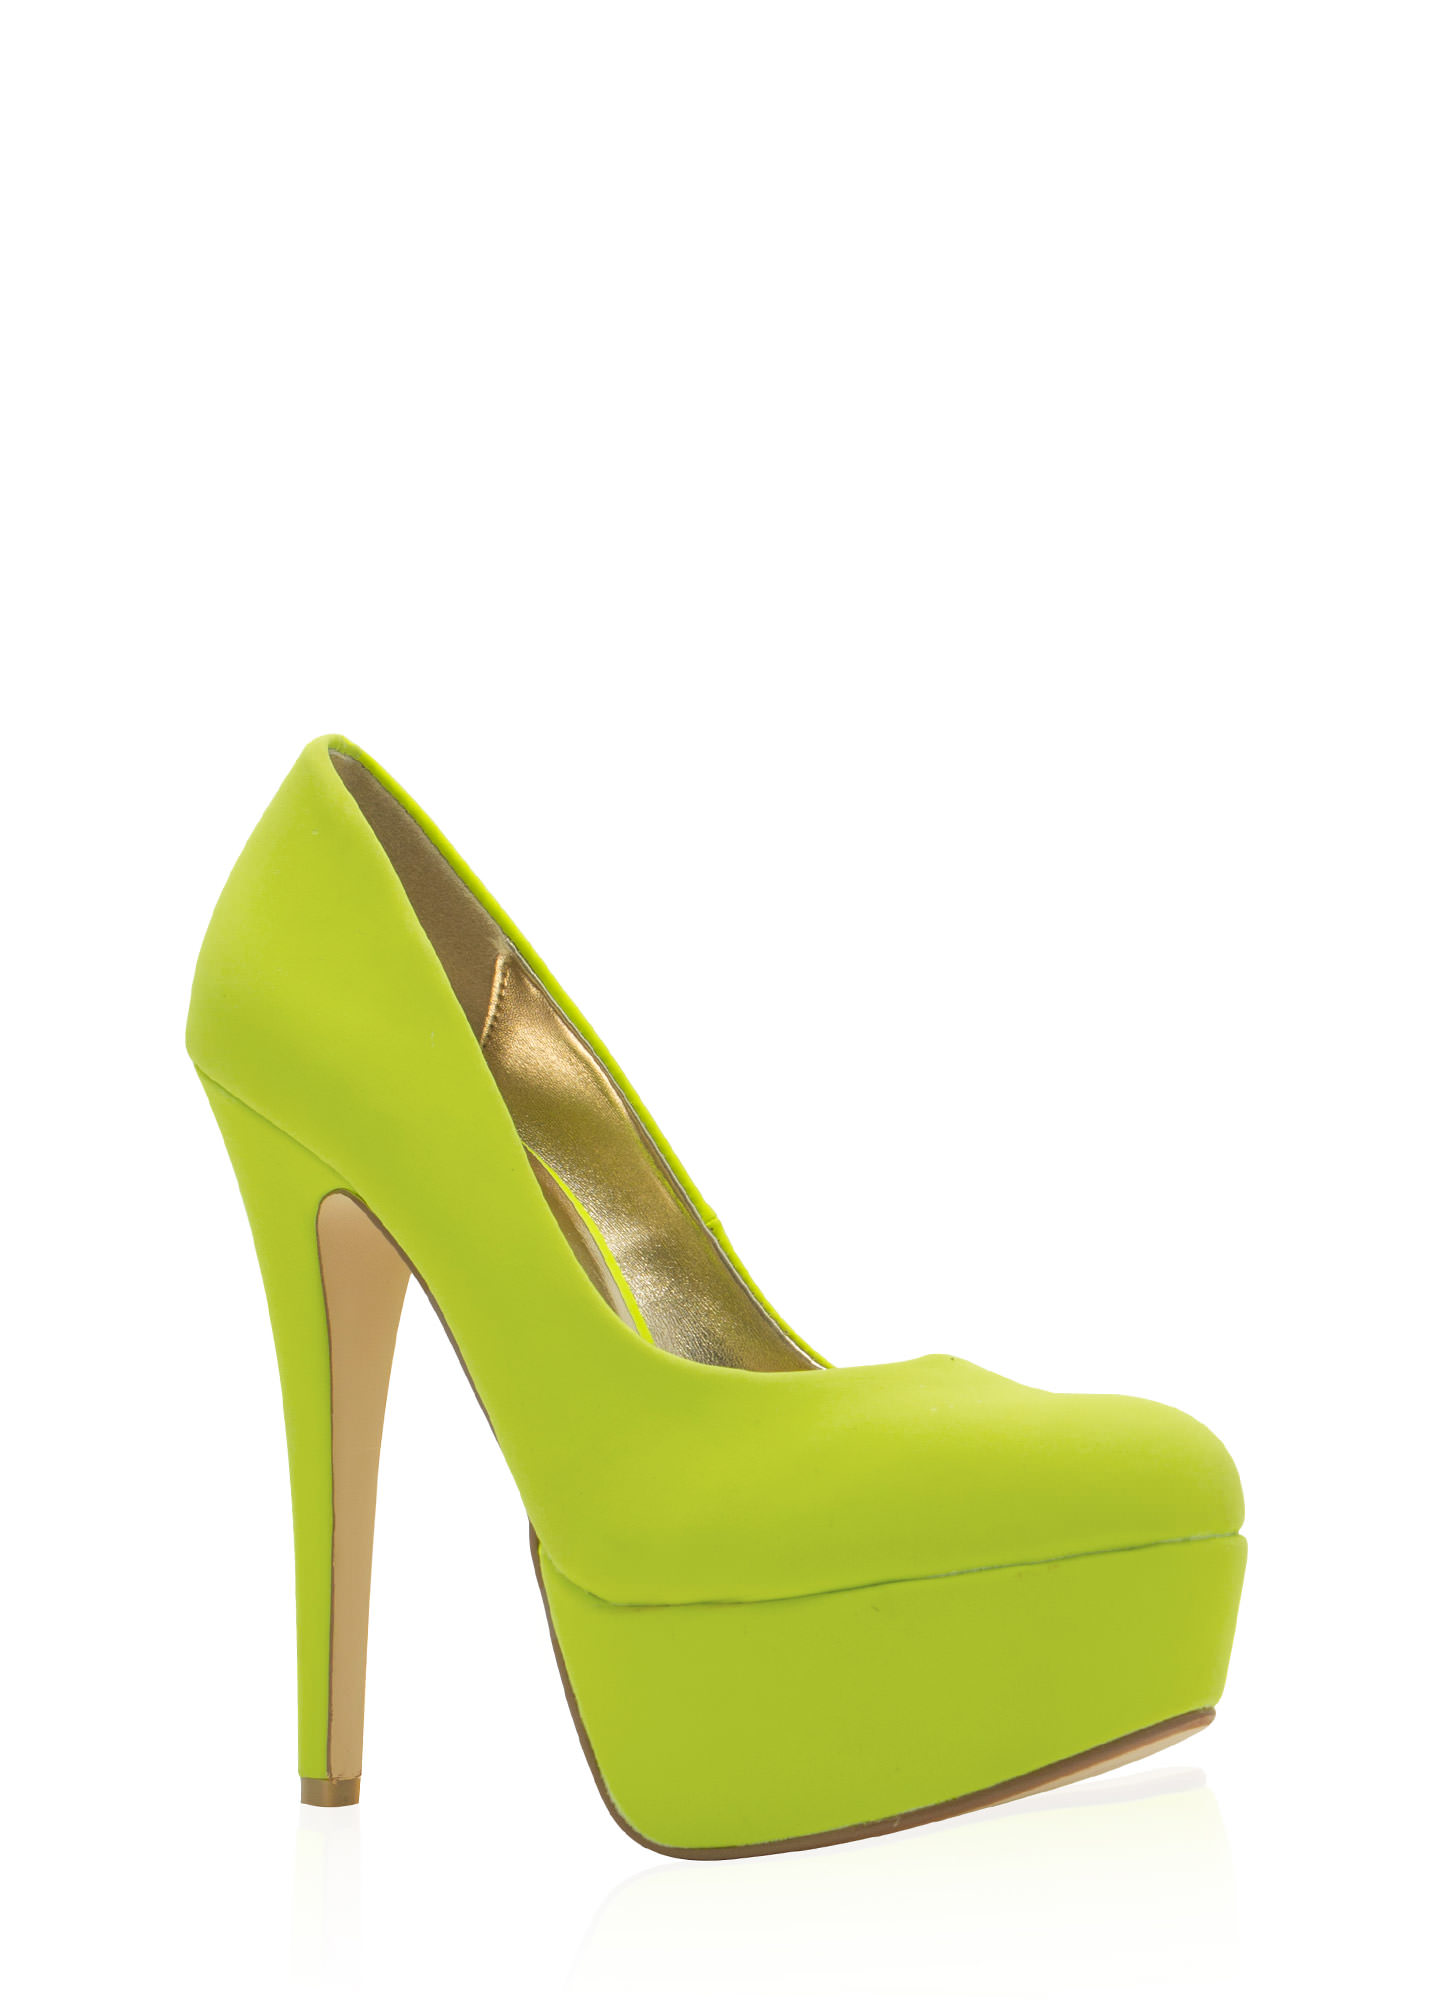 Simply Irresistible Platforms NEONLIME